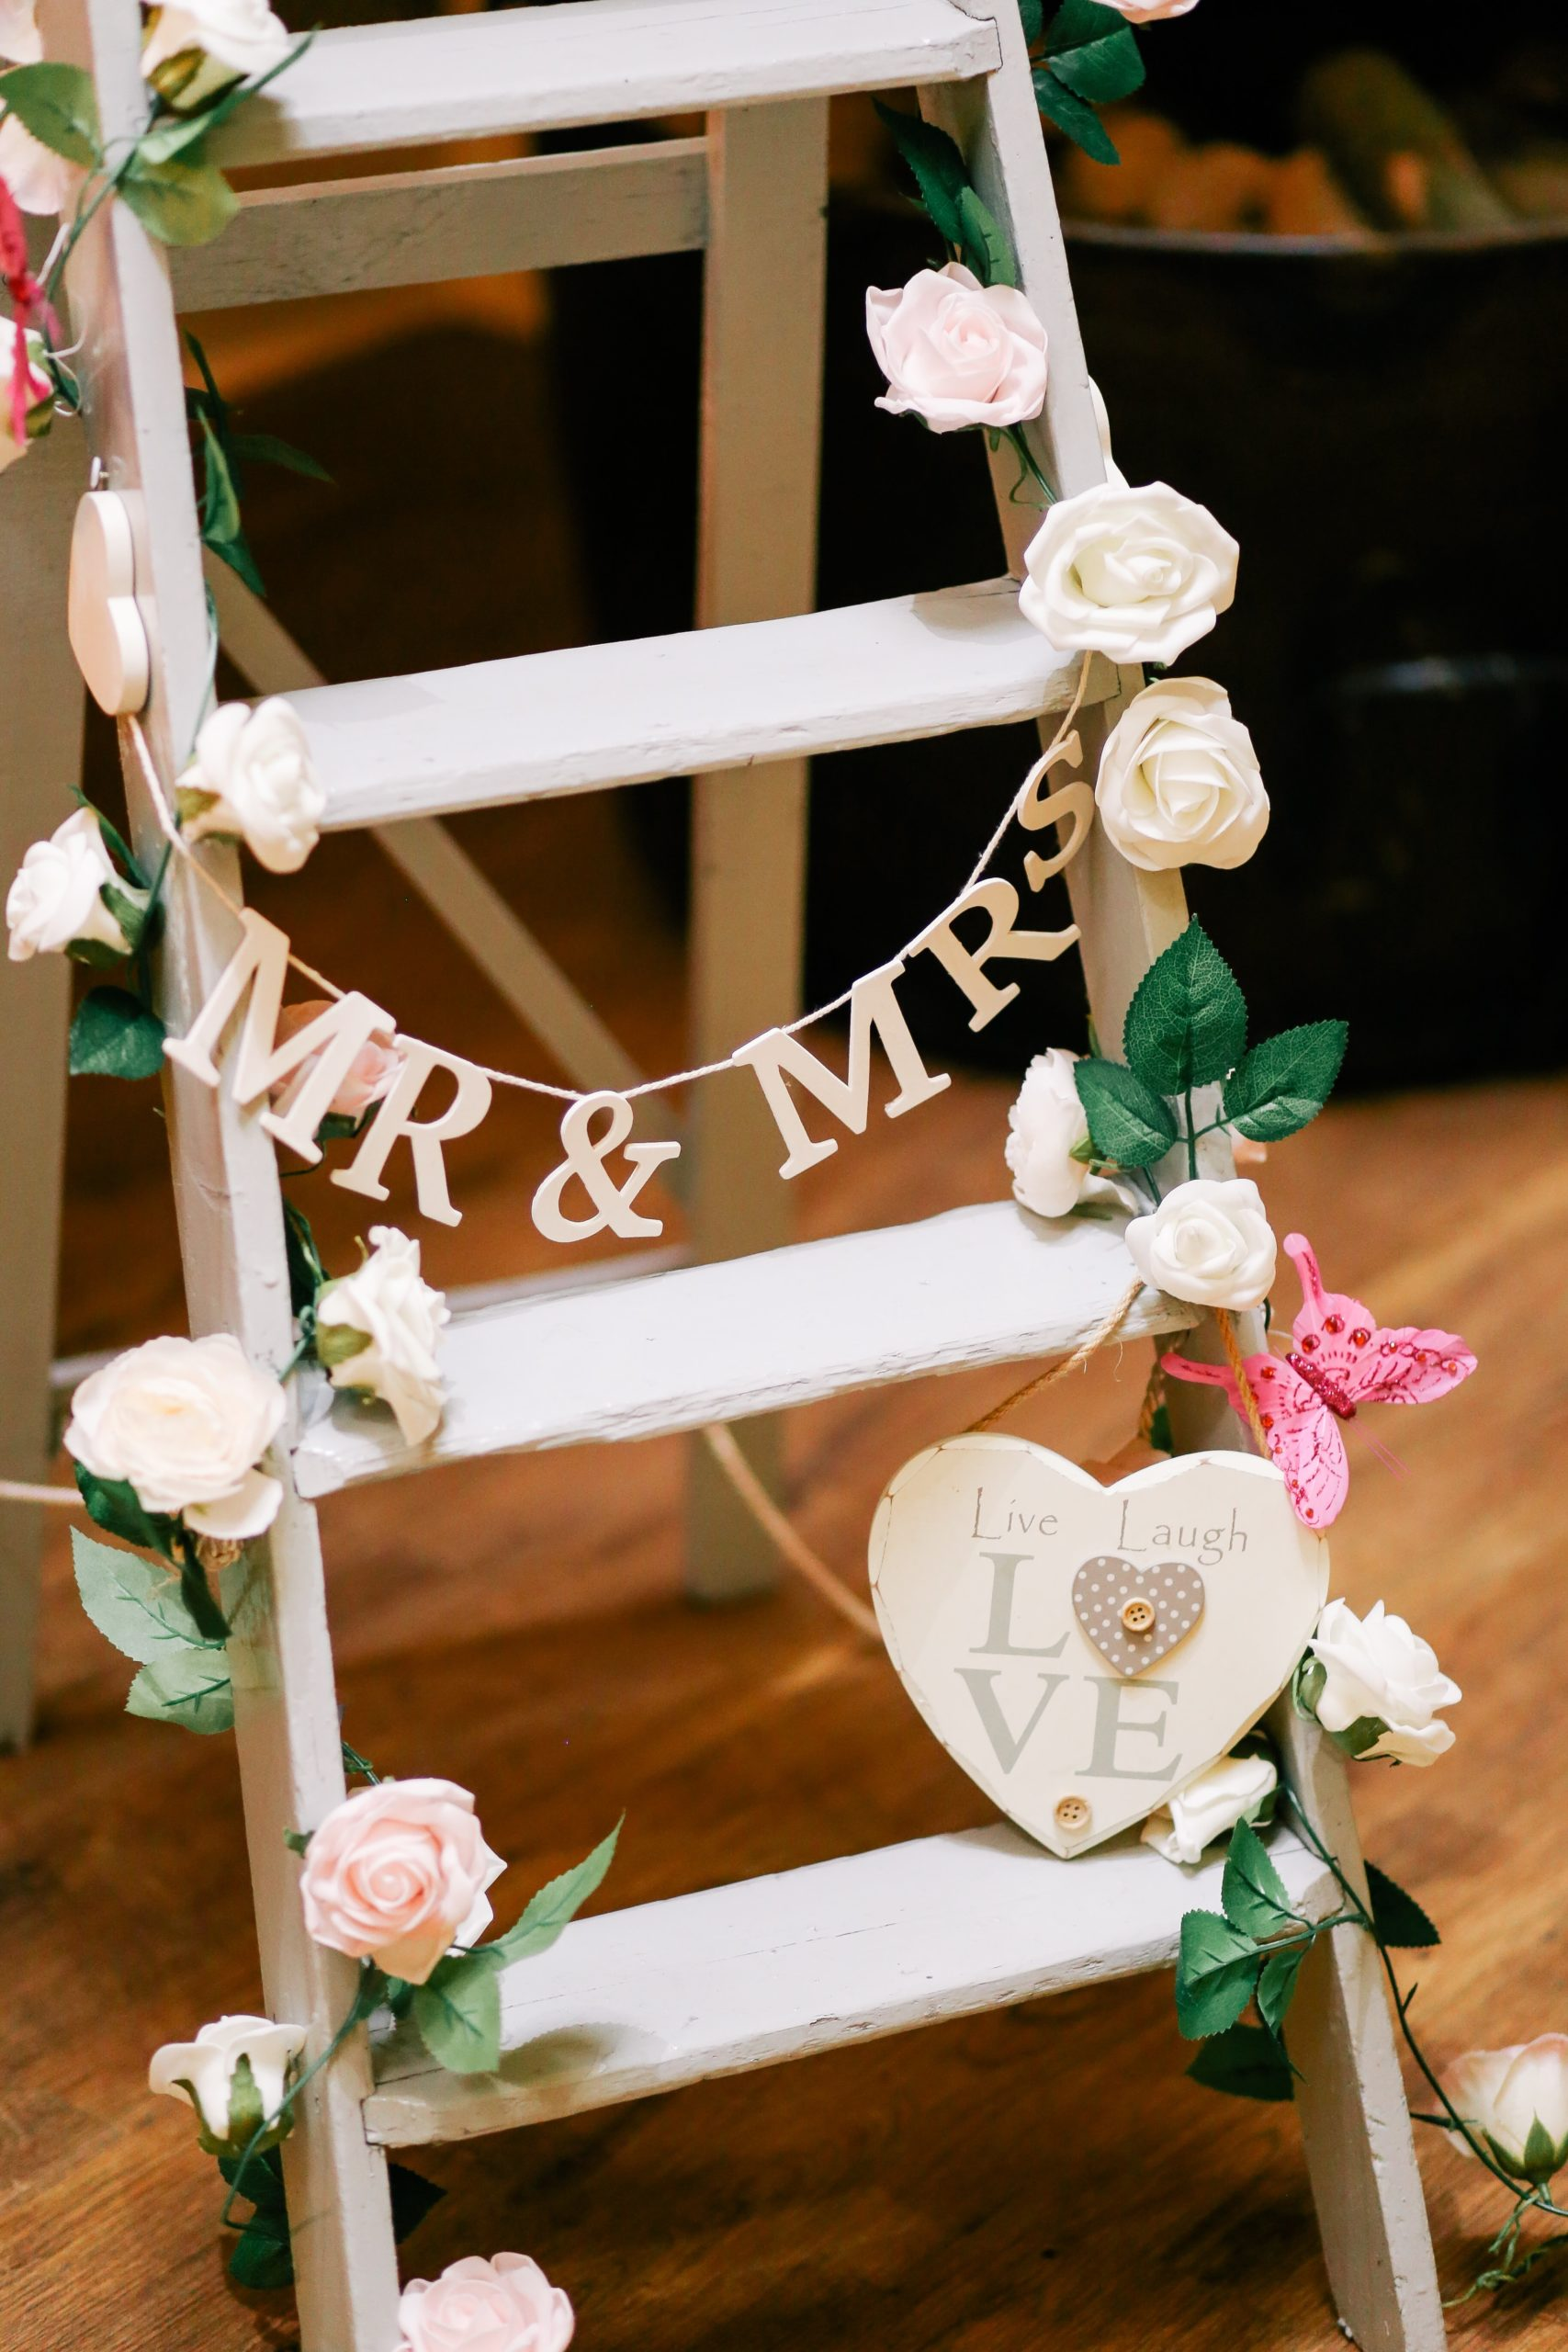 How To Pick Your Wedding Video Style?